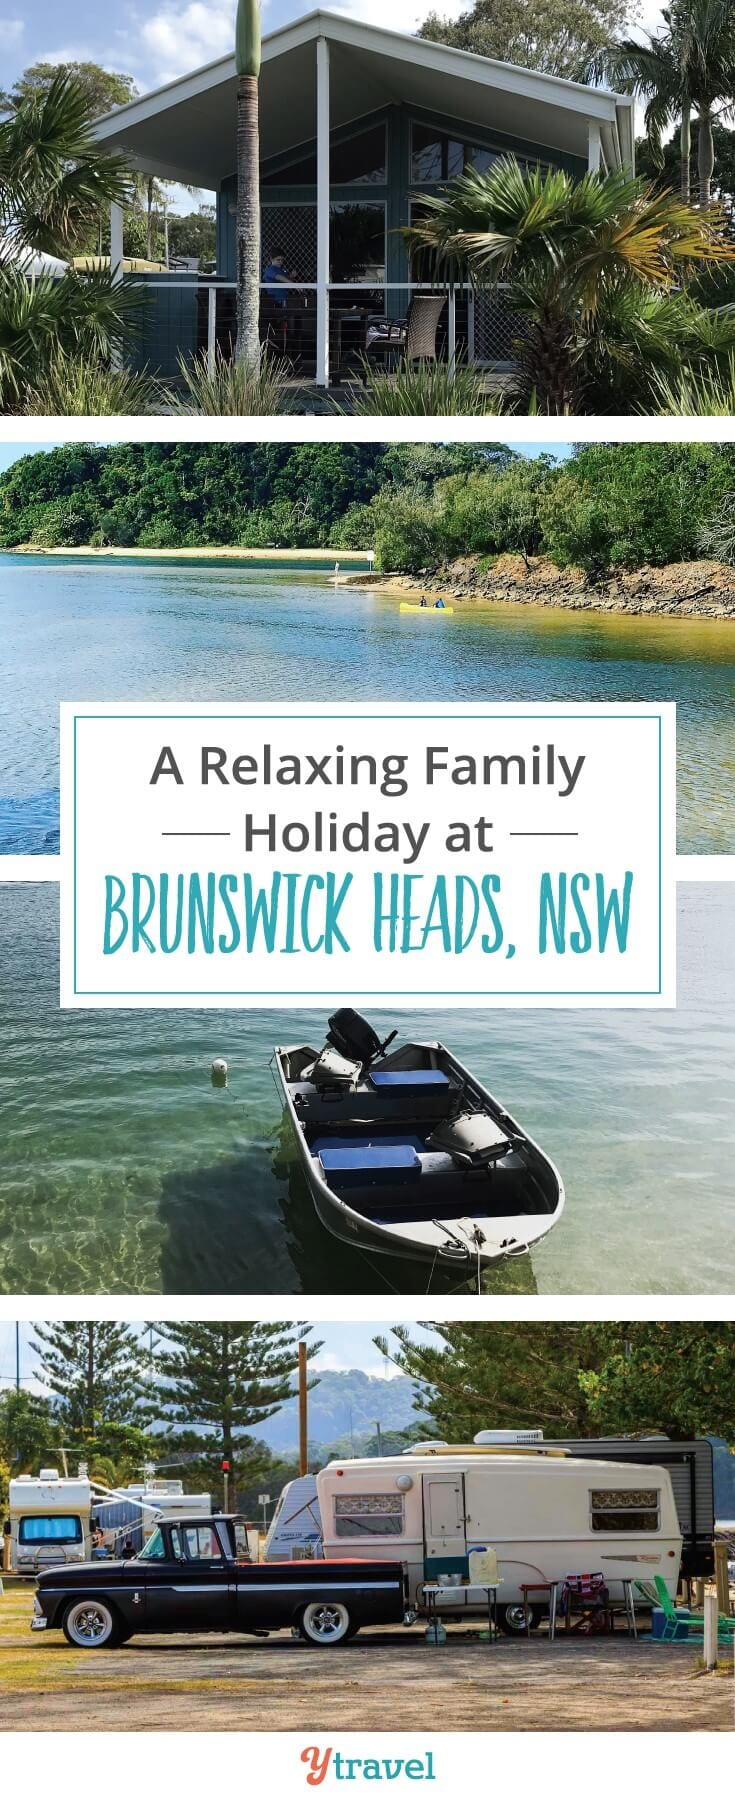 Thinking of taking a relaxing family holiday this summer? Brunswick Heads on the NSW North Coast is a place to unwind and reconnect. Check out this weekend getaway to Massey Greene caravan park